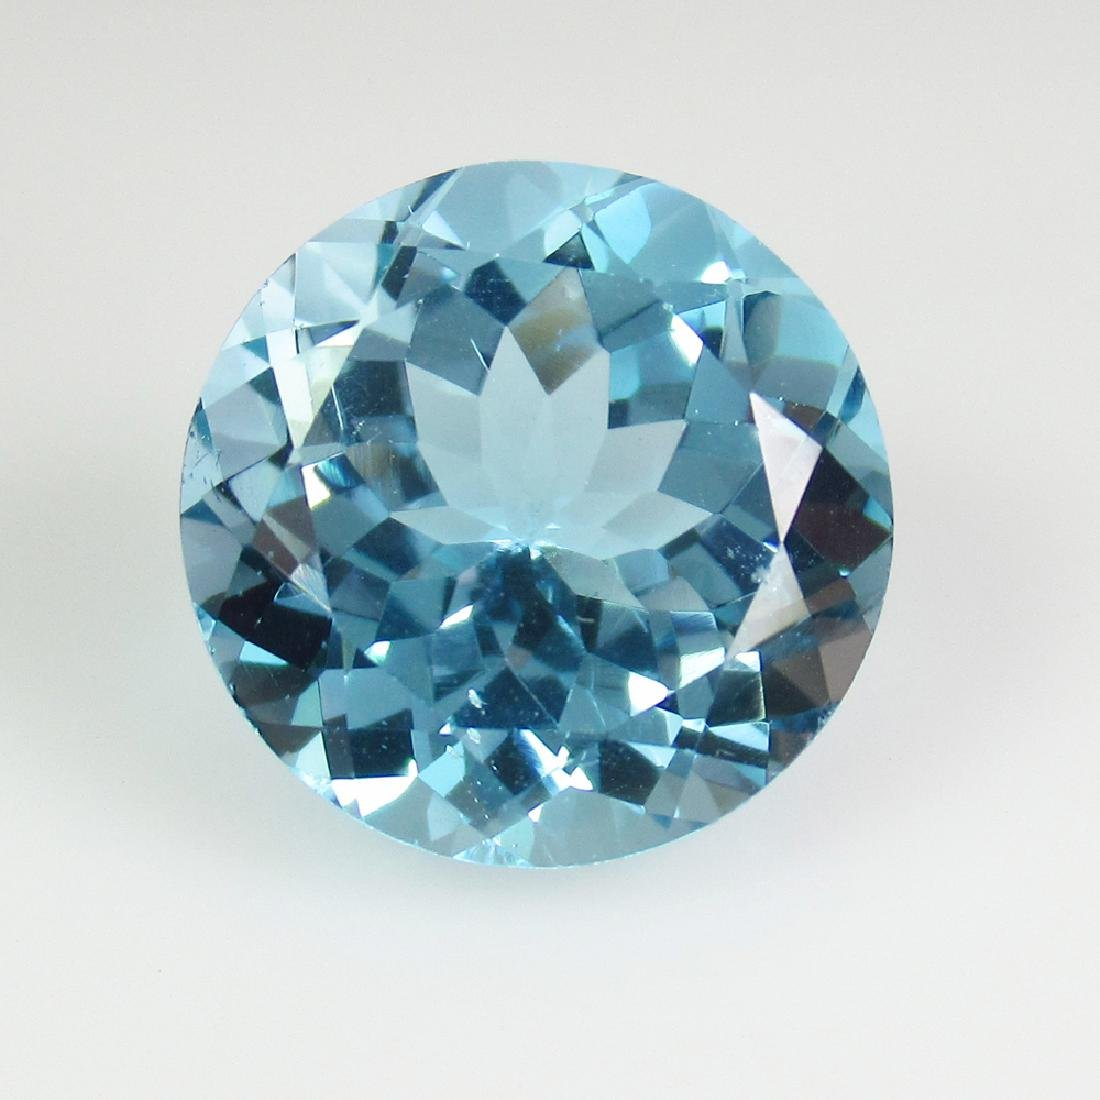 12.61 Ct Genuine Brazil Blue Topaz 14 mm Round Cut For